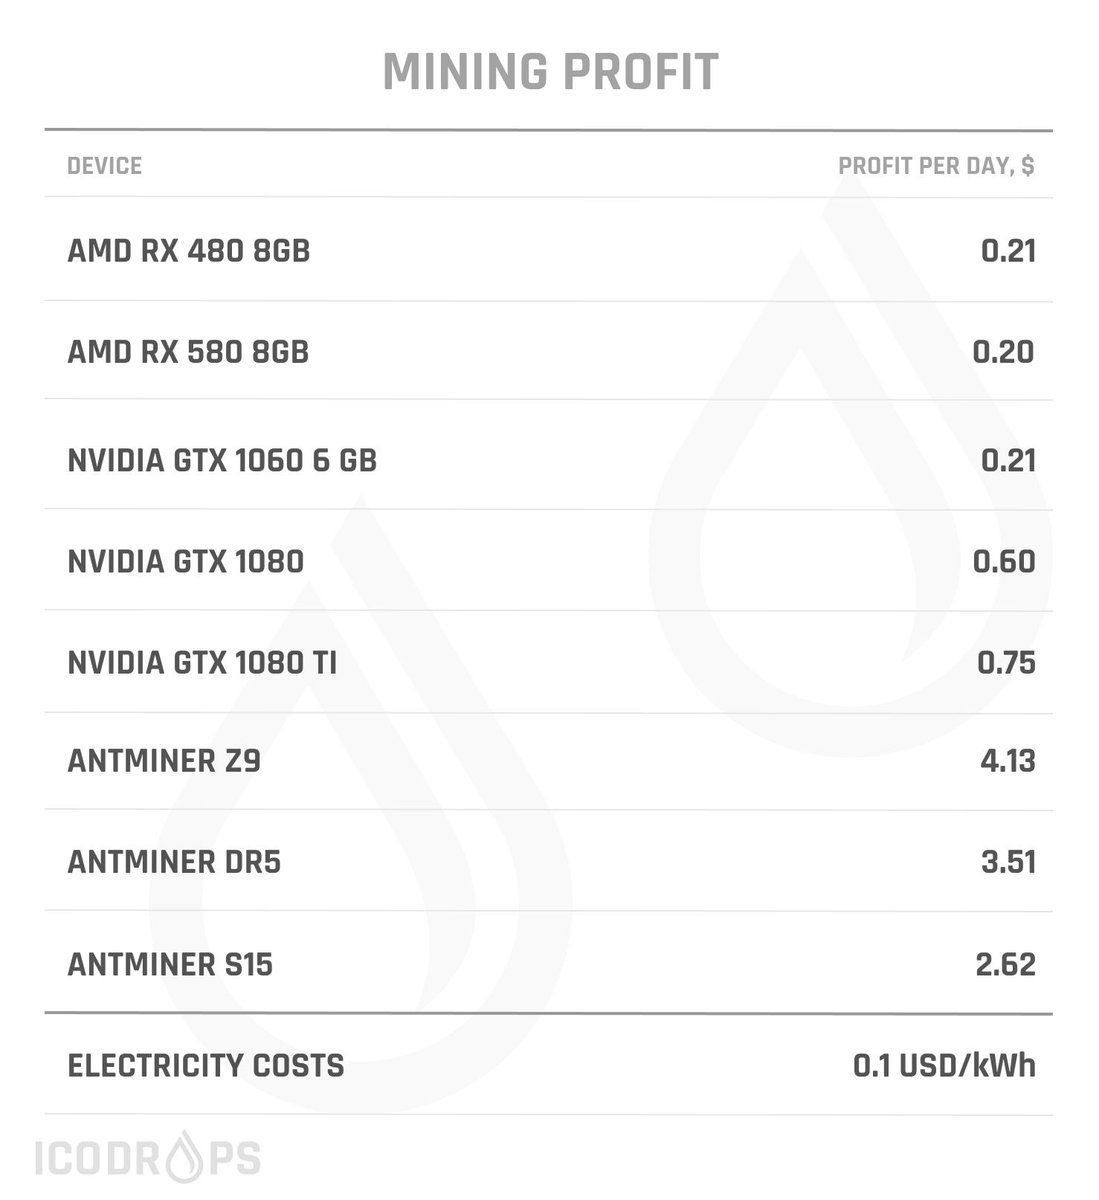 Ico Drops On Twitter Mining Profit Is Now Higher 0 Again But Still On The Verge Of Payback Source Https T Co Zk9b5iwwxp Про майнинг на sapphire nitro + rx 580 4gb (elpida) прошивка и разгон. twitter